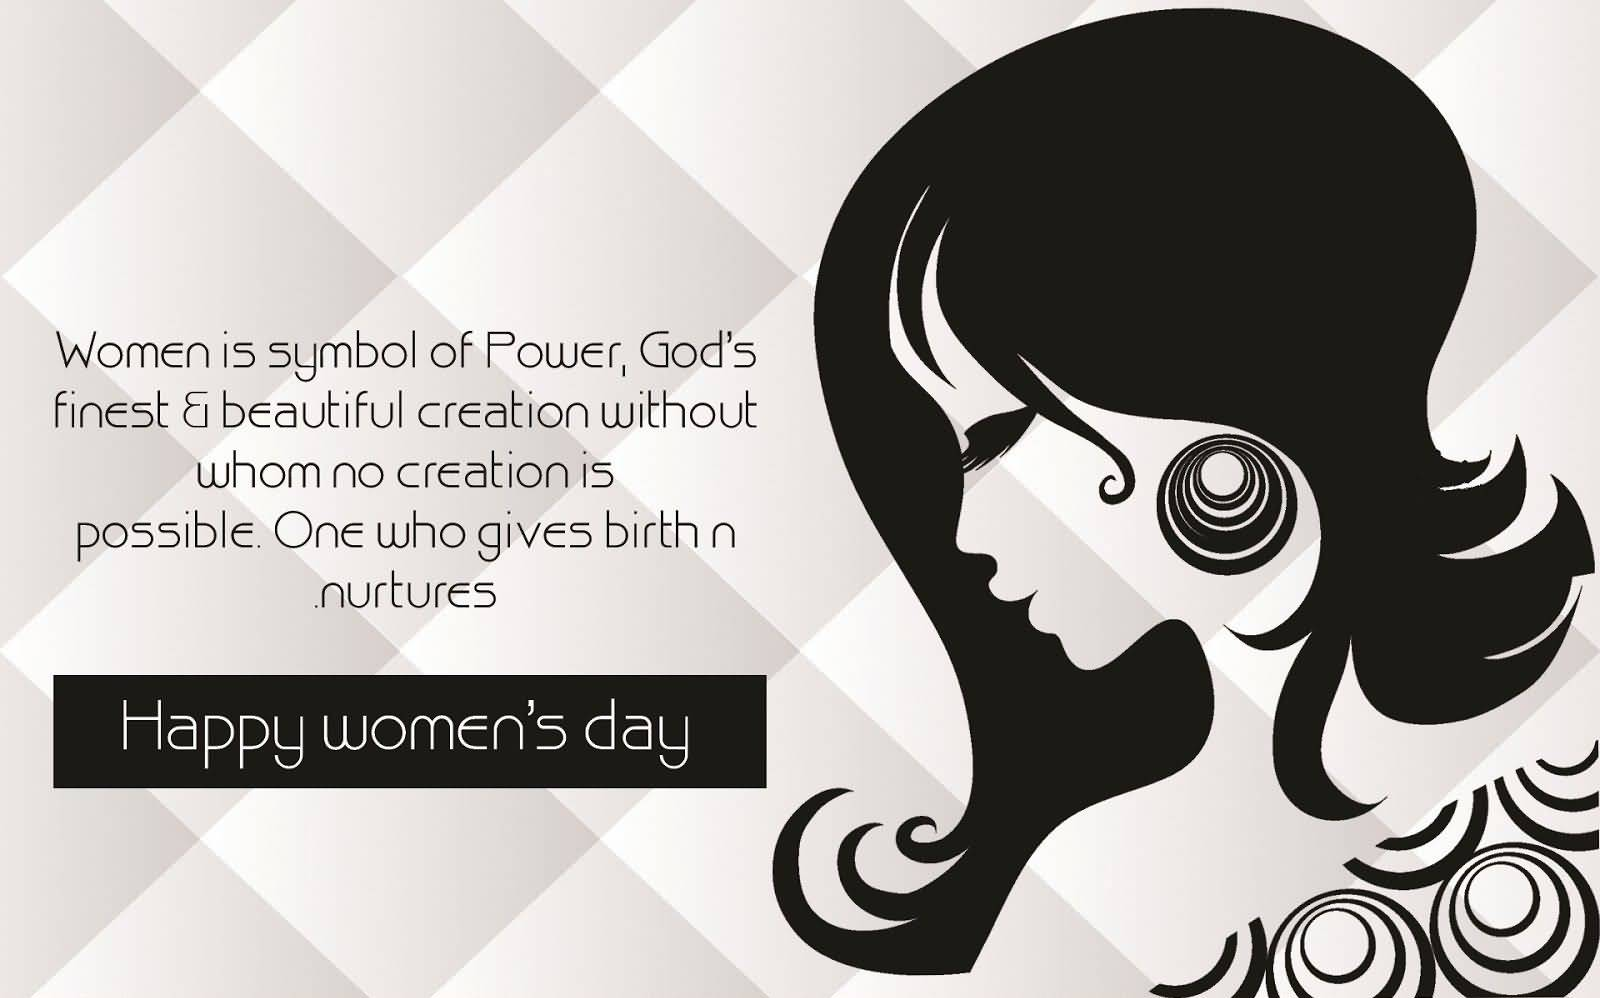 50 most beautiful womens day wish pictures and photos women is symbol of power gods finest beautiful creation without whom no creation is biocorpaavc Choice Image